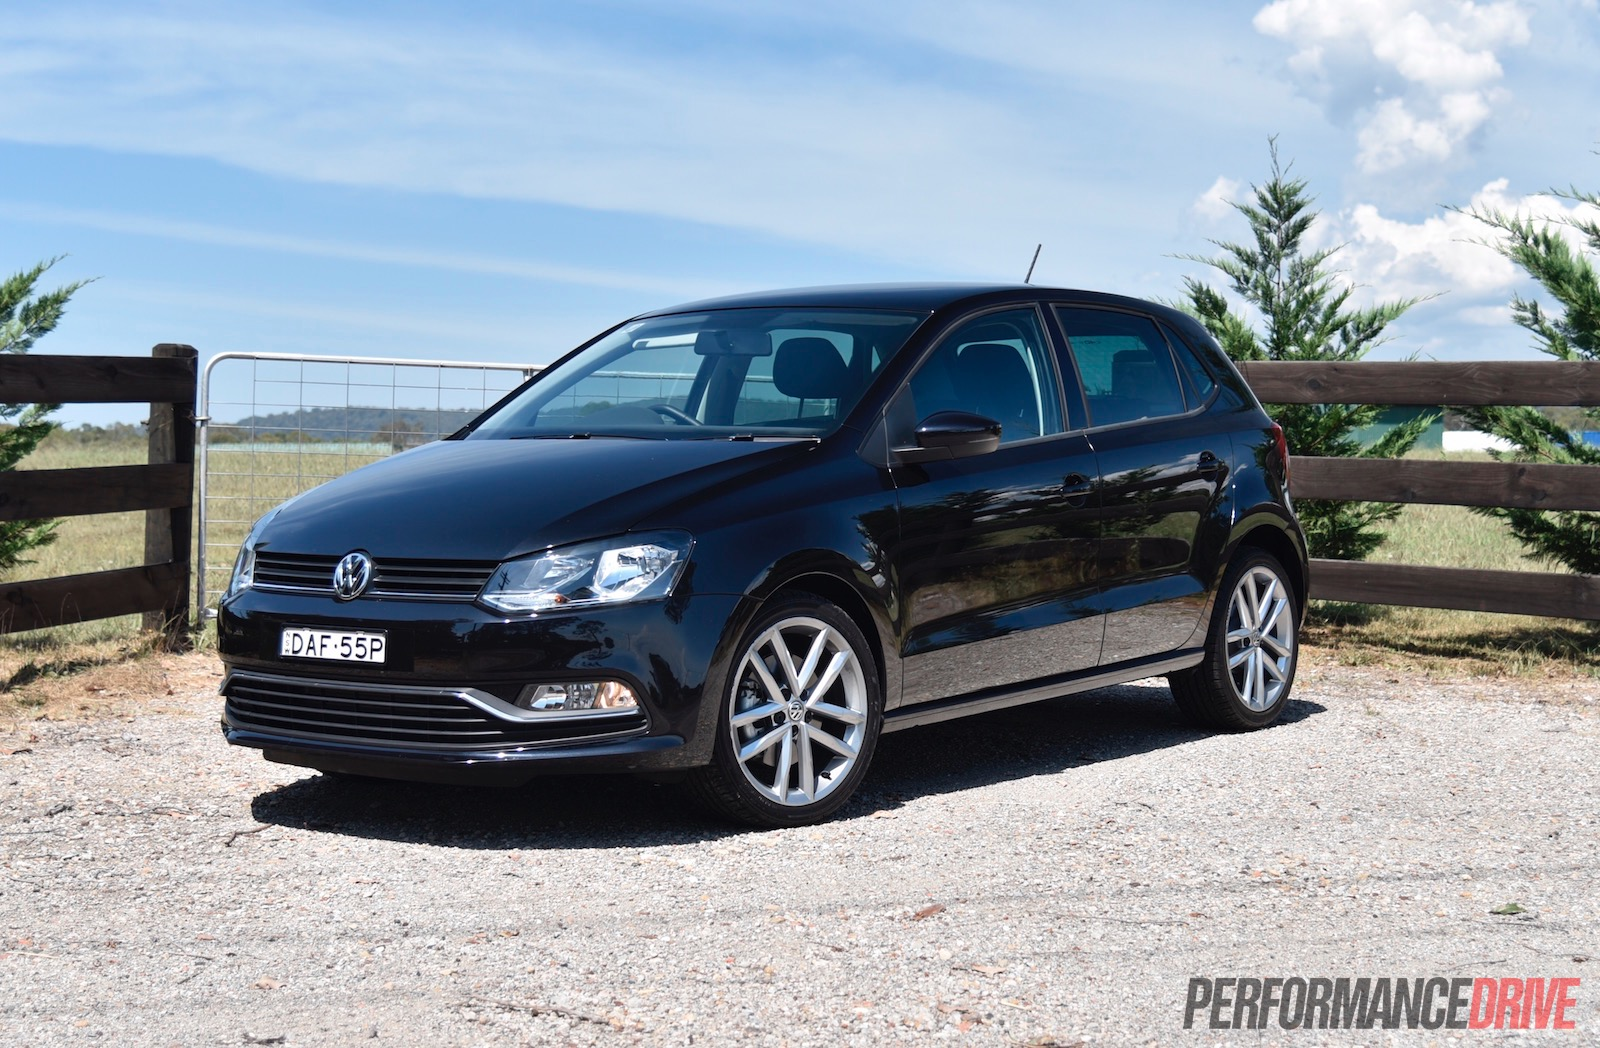 2016 Volkswagen Polo 81tsi Comfortline Review Video